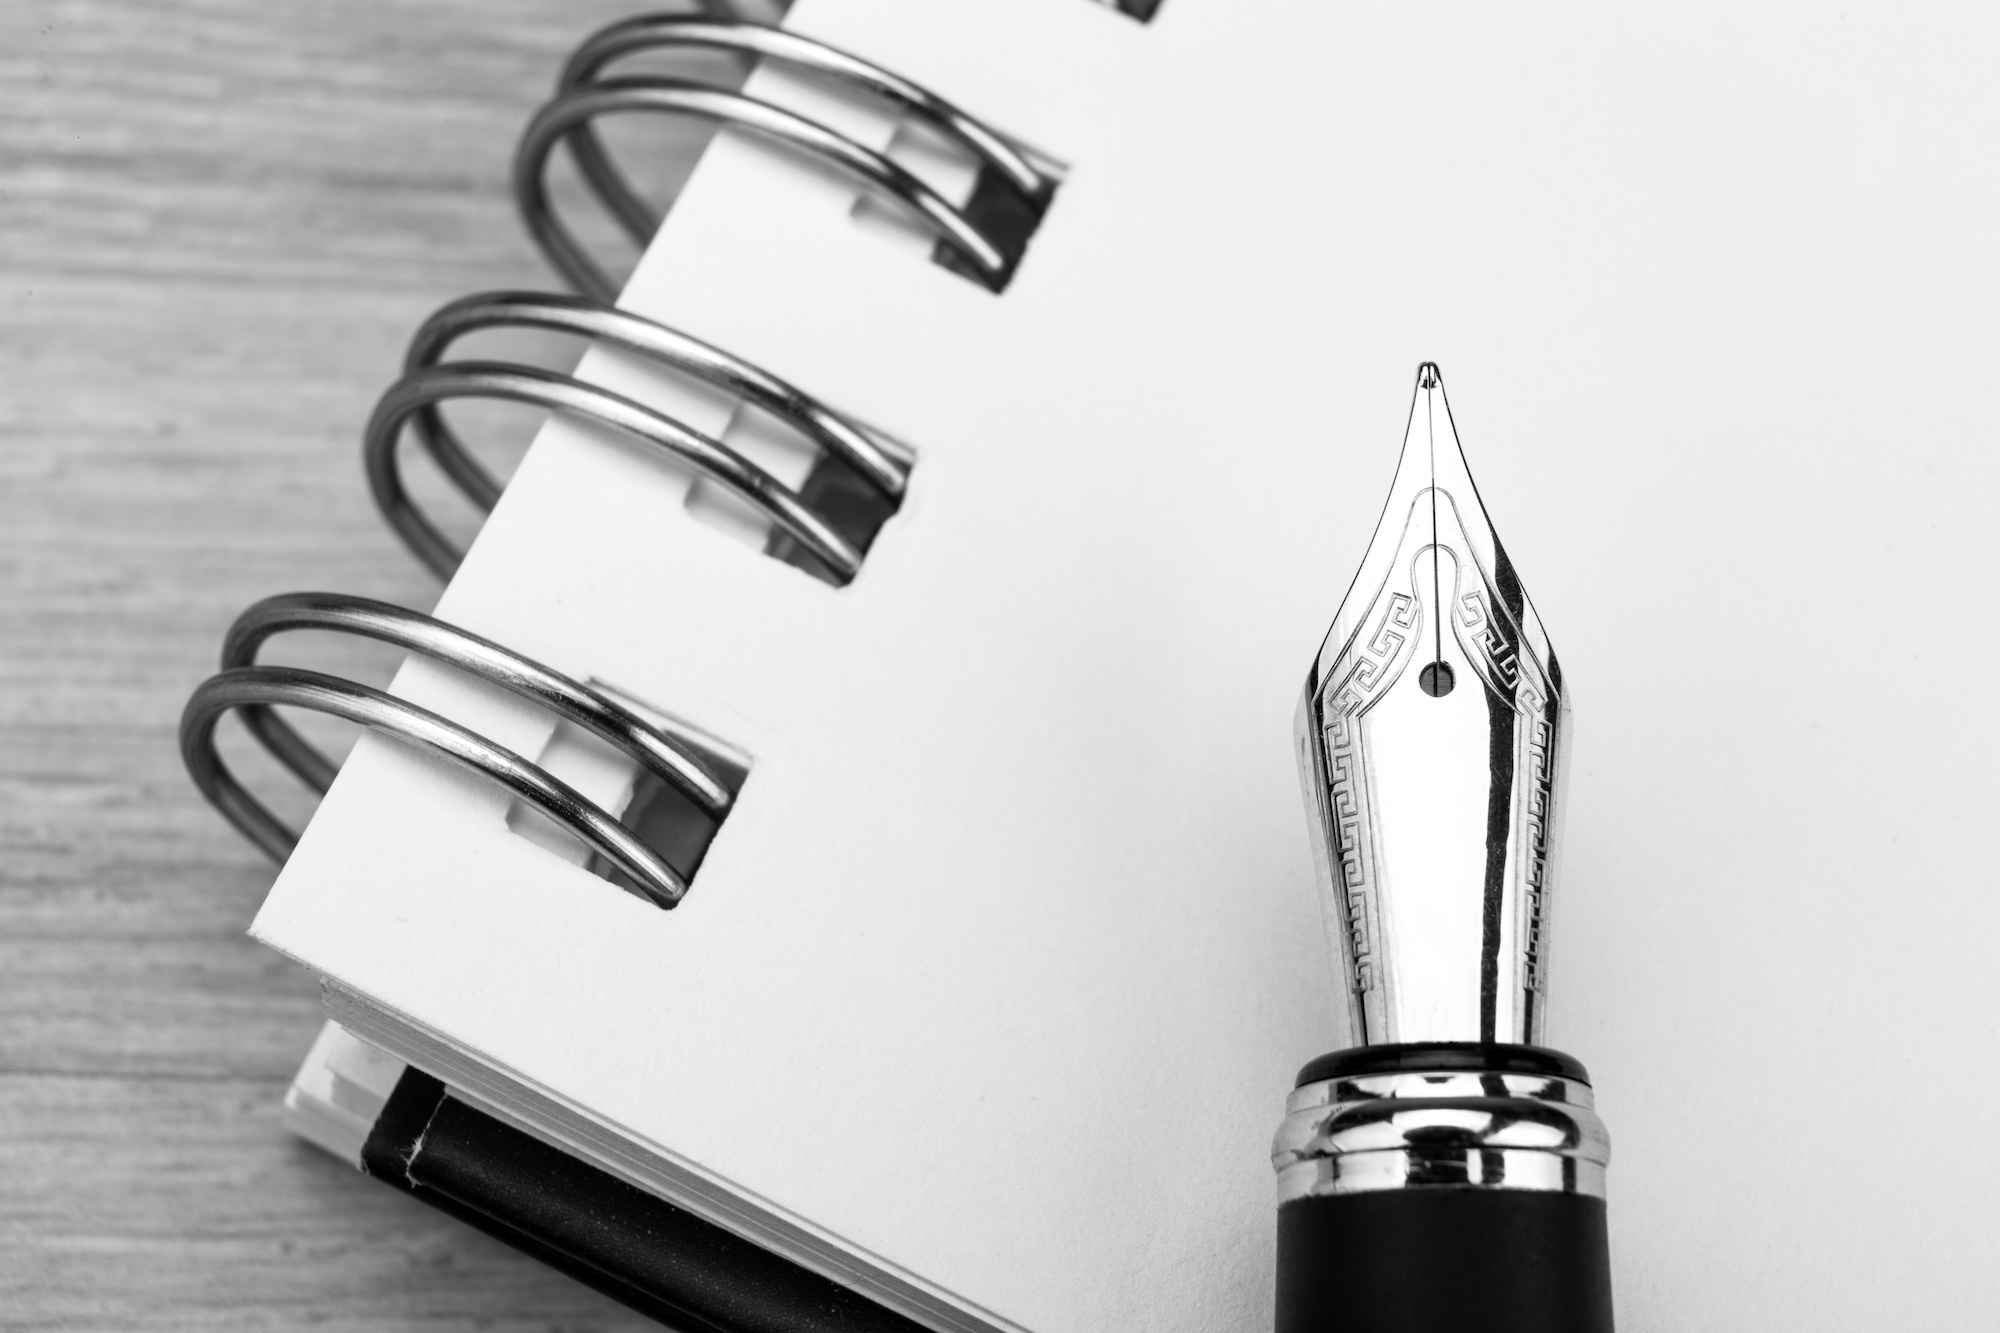 Article - Writing the next chapter